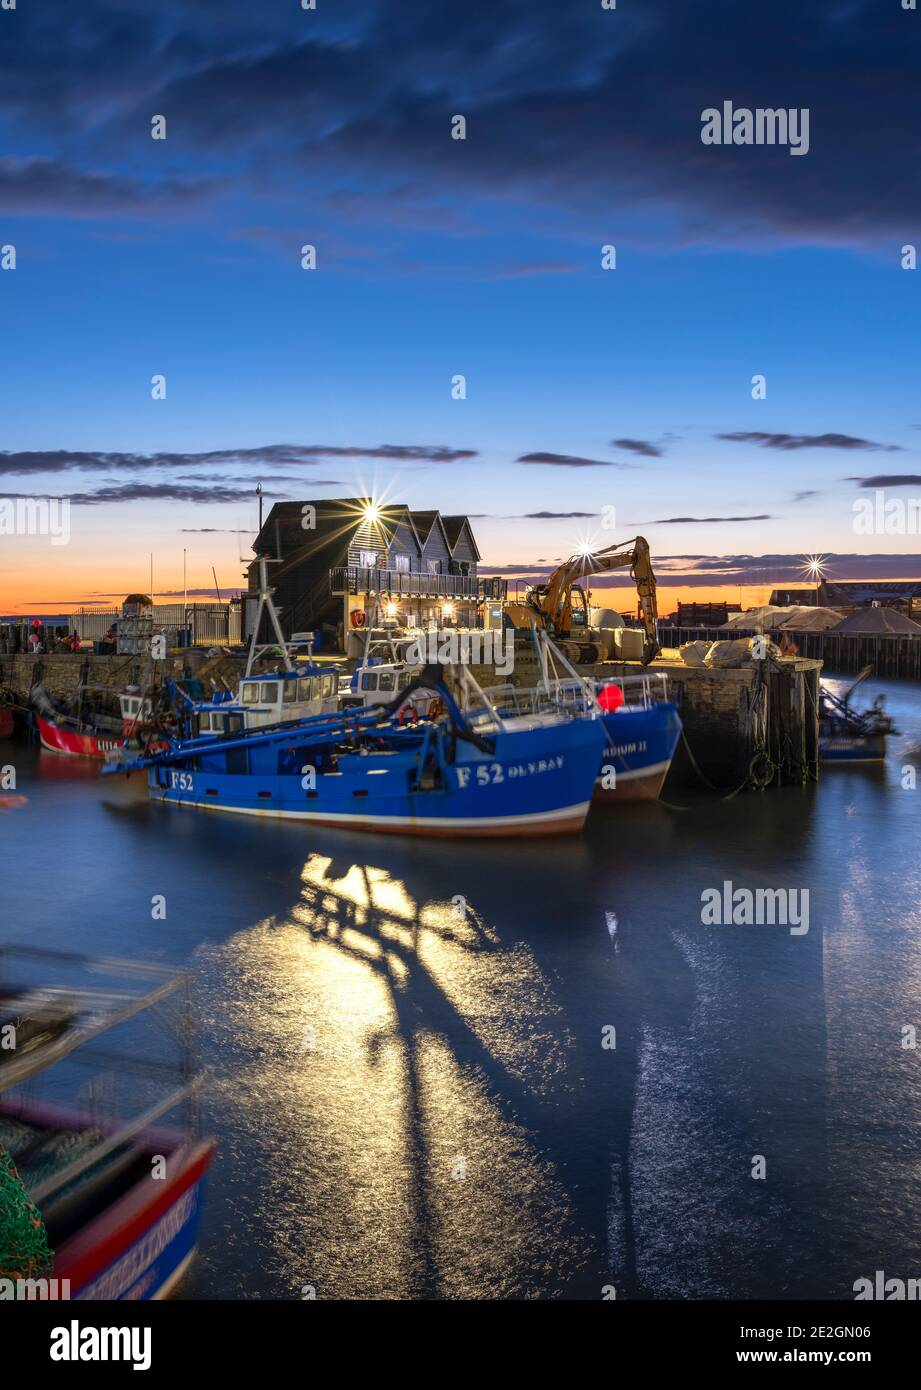 Fishing vessels in Whitstable harbour illuminated at dusk on the North Kent coast. Stock Photo